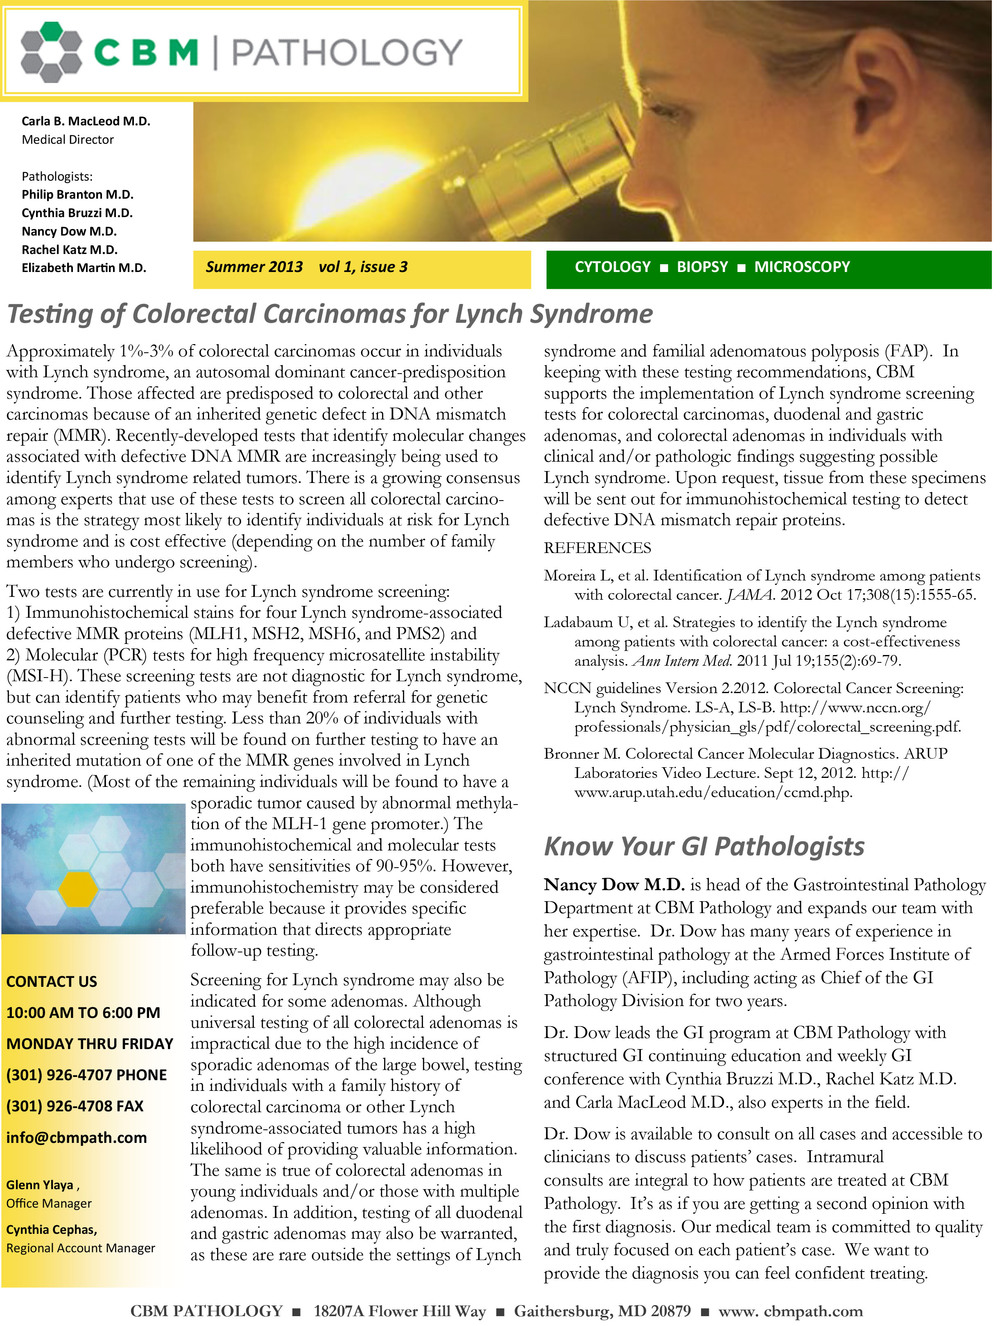 Summer 2013- click on image for pdf to print Gastrointestinal Pathology